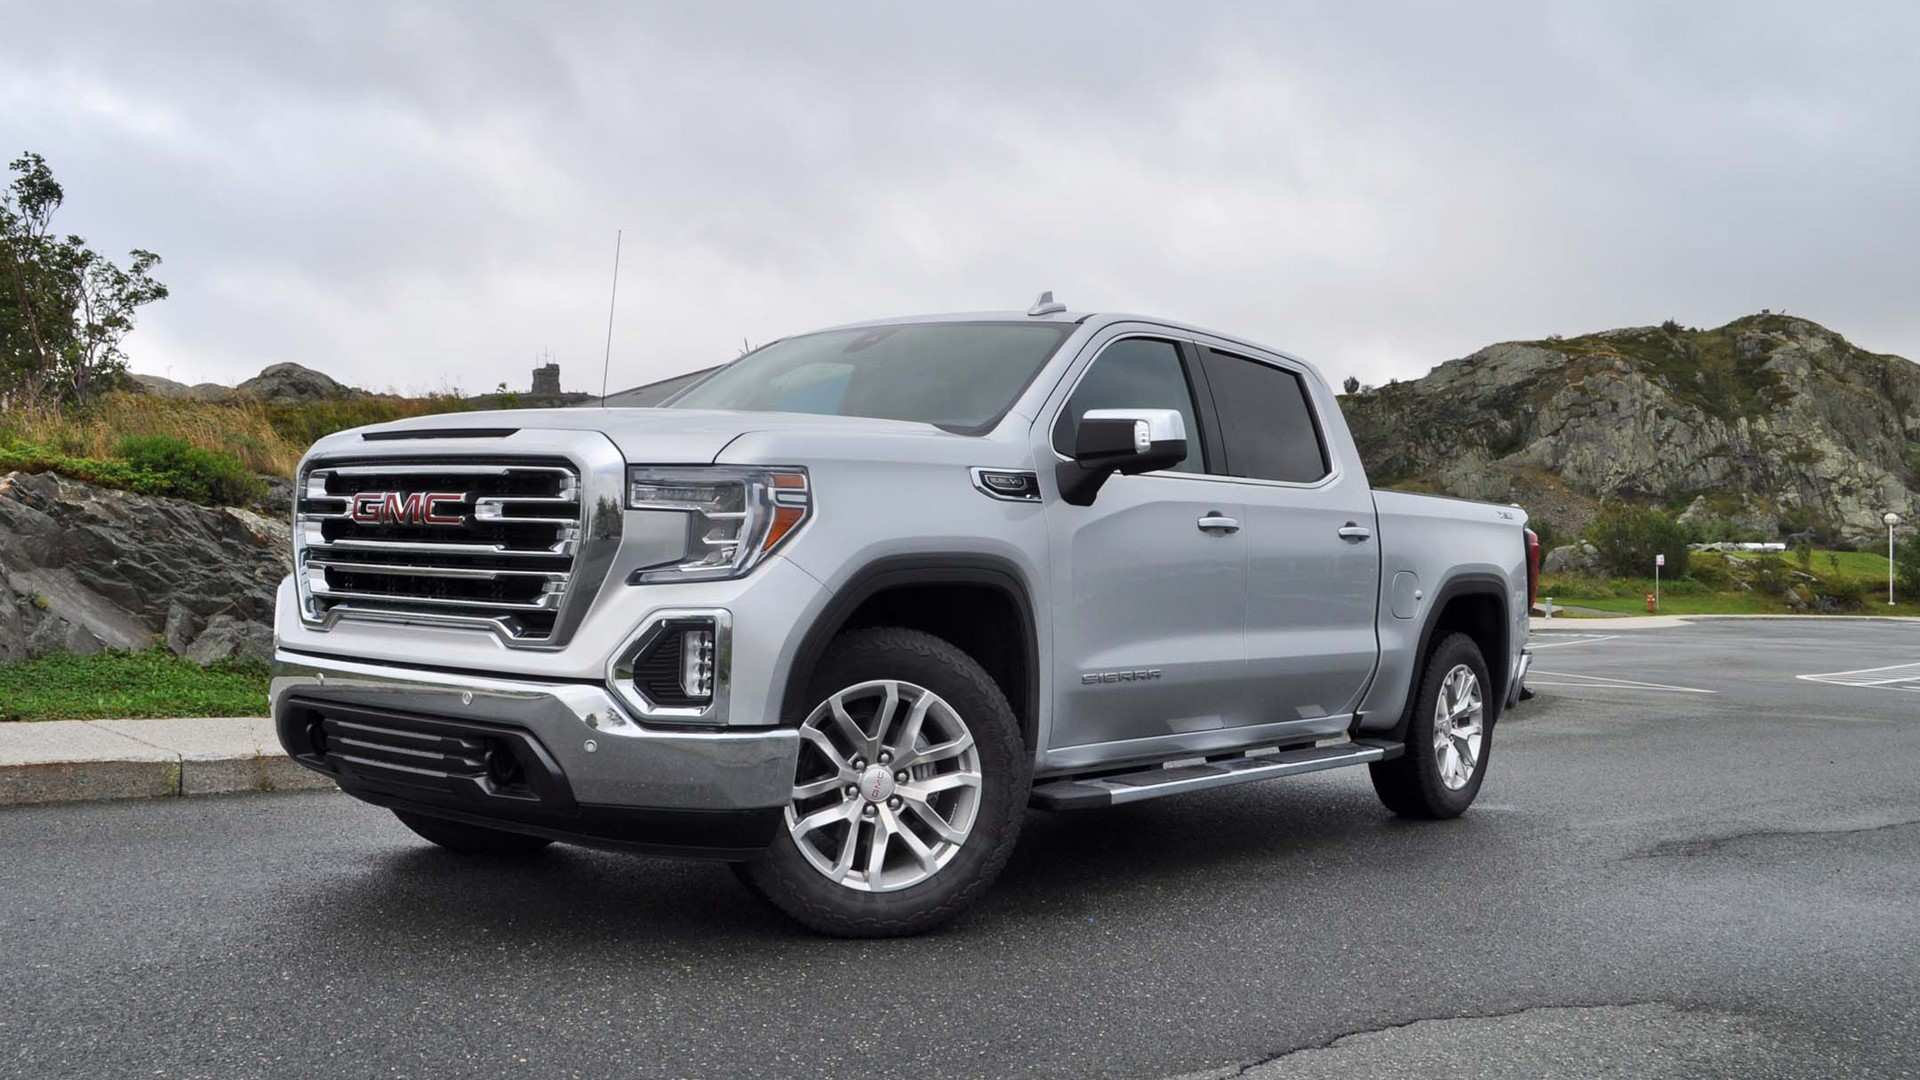 61 Gallery of 2019 Gmc Pickup Release Date Exterior by 2019 Gmc Pickup Release Date